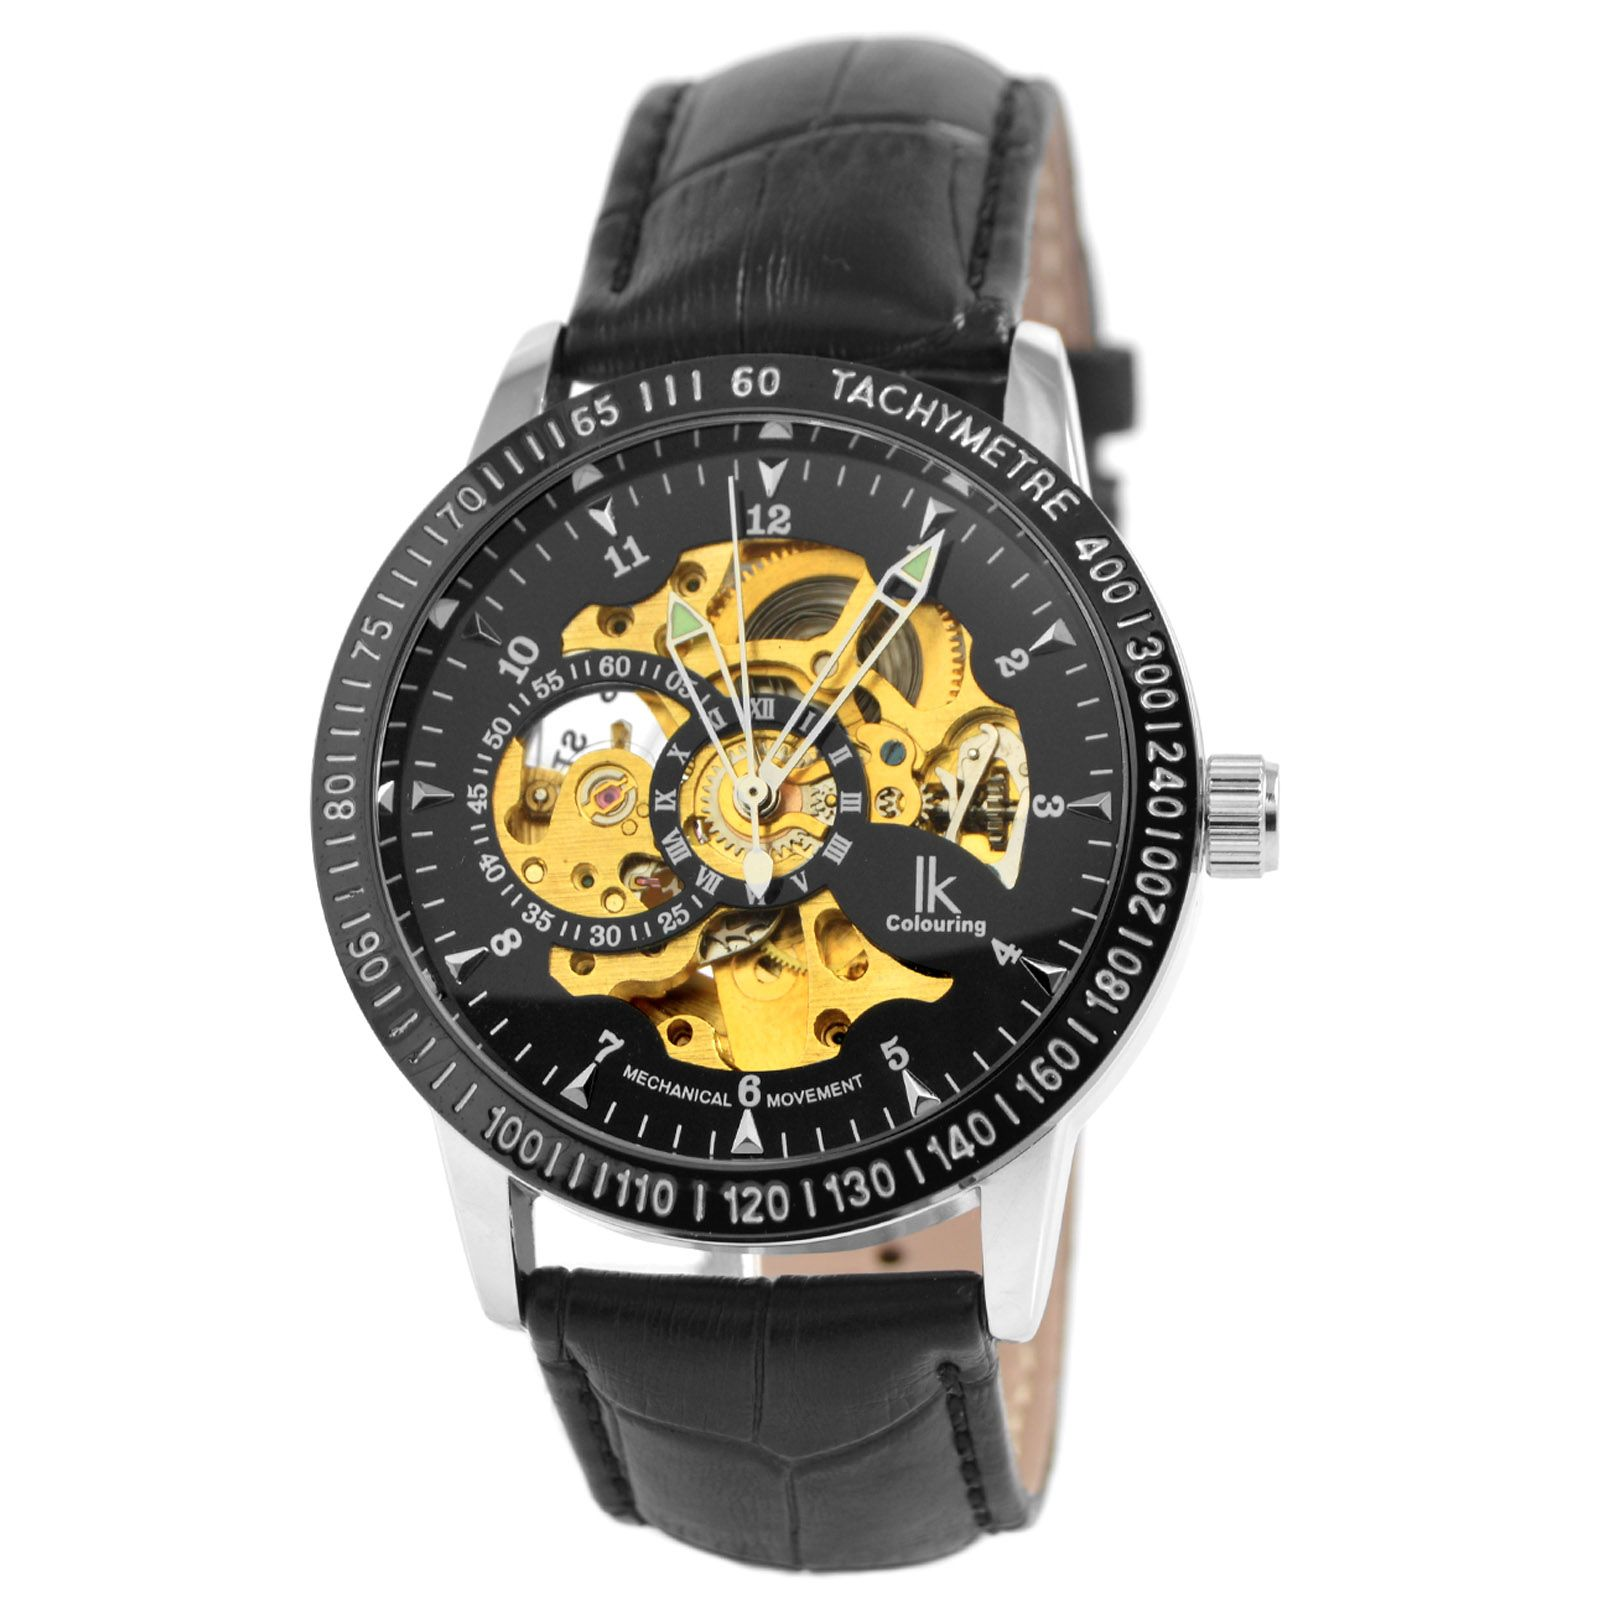 5687b04ceeb Black Leather Rolat Watch Colouring, Sorting, Color, Watches, Bracelets,  Accessories,